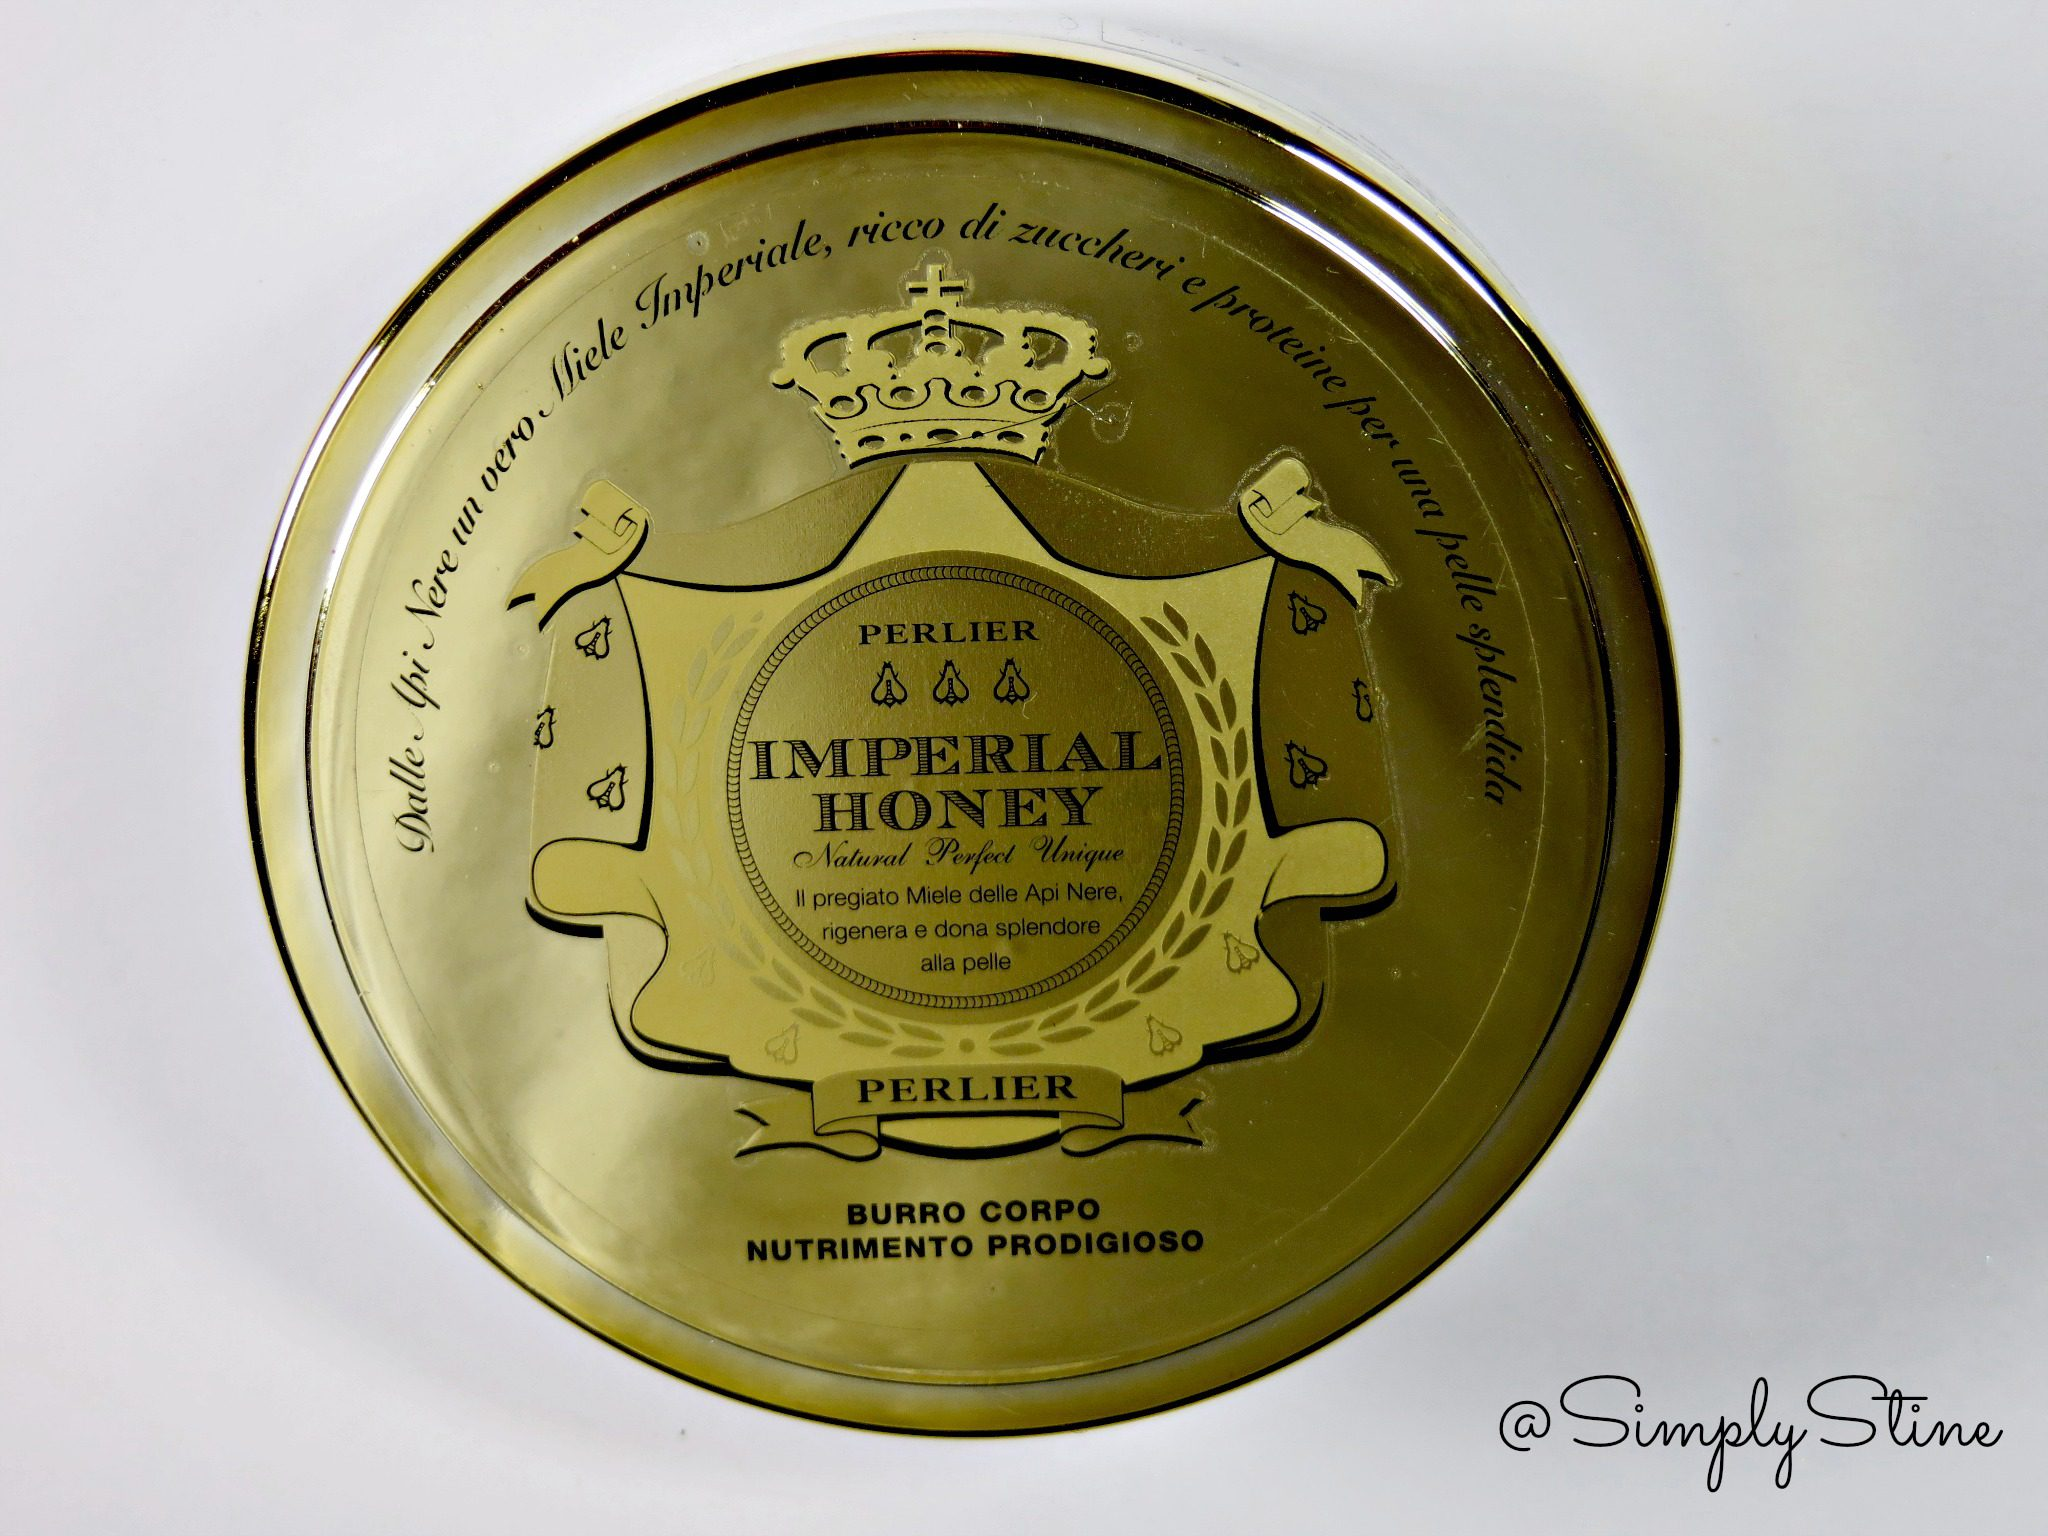 Perlier Imperial Honey Body Butter from iFabbo Review